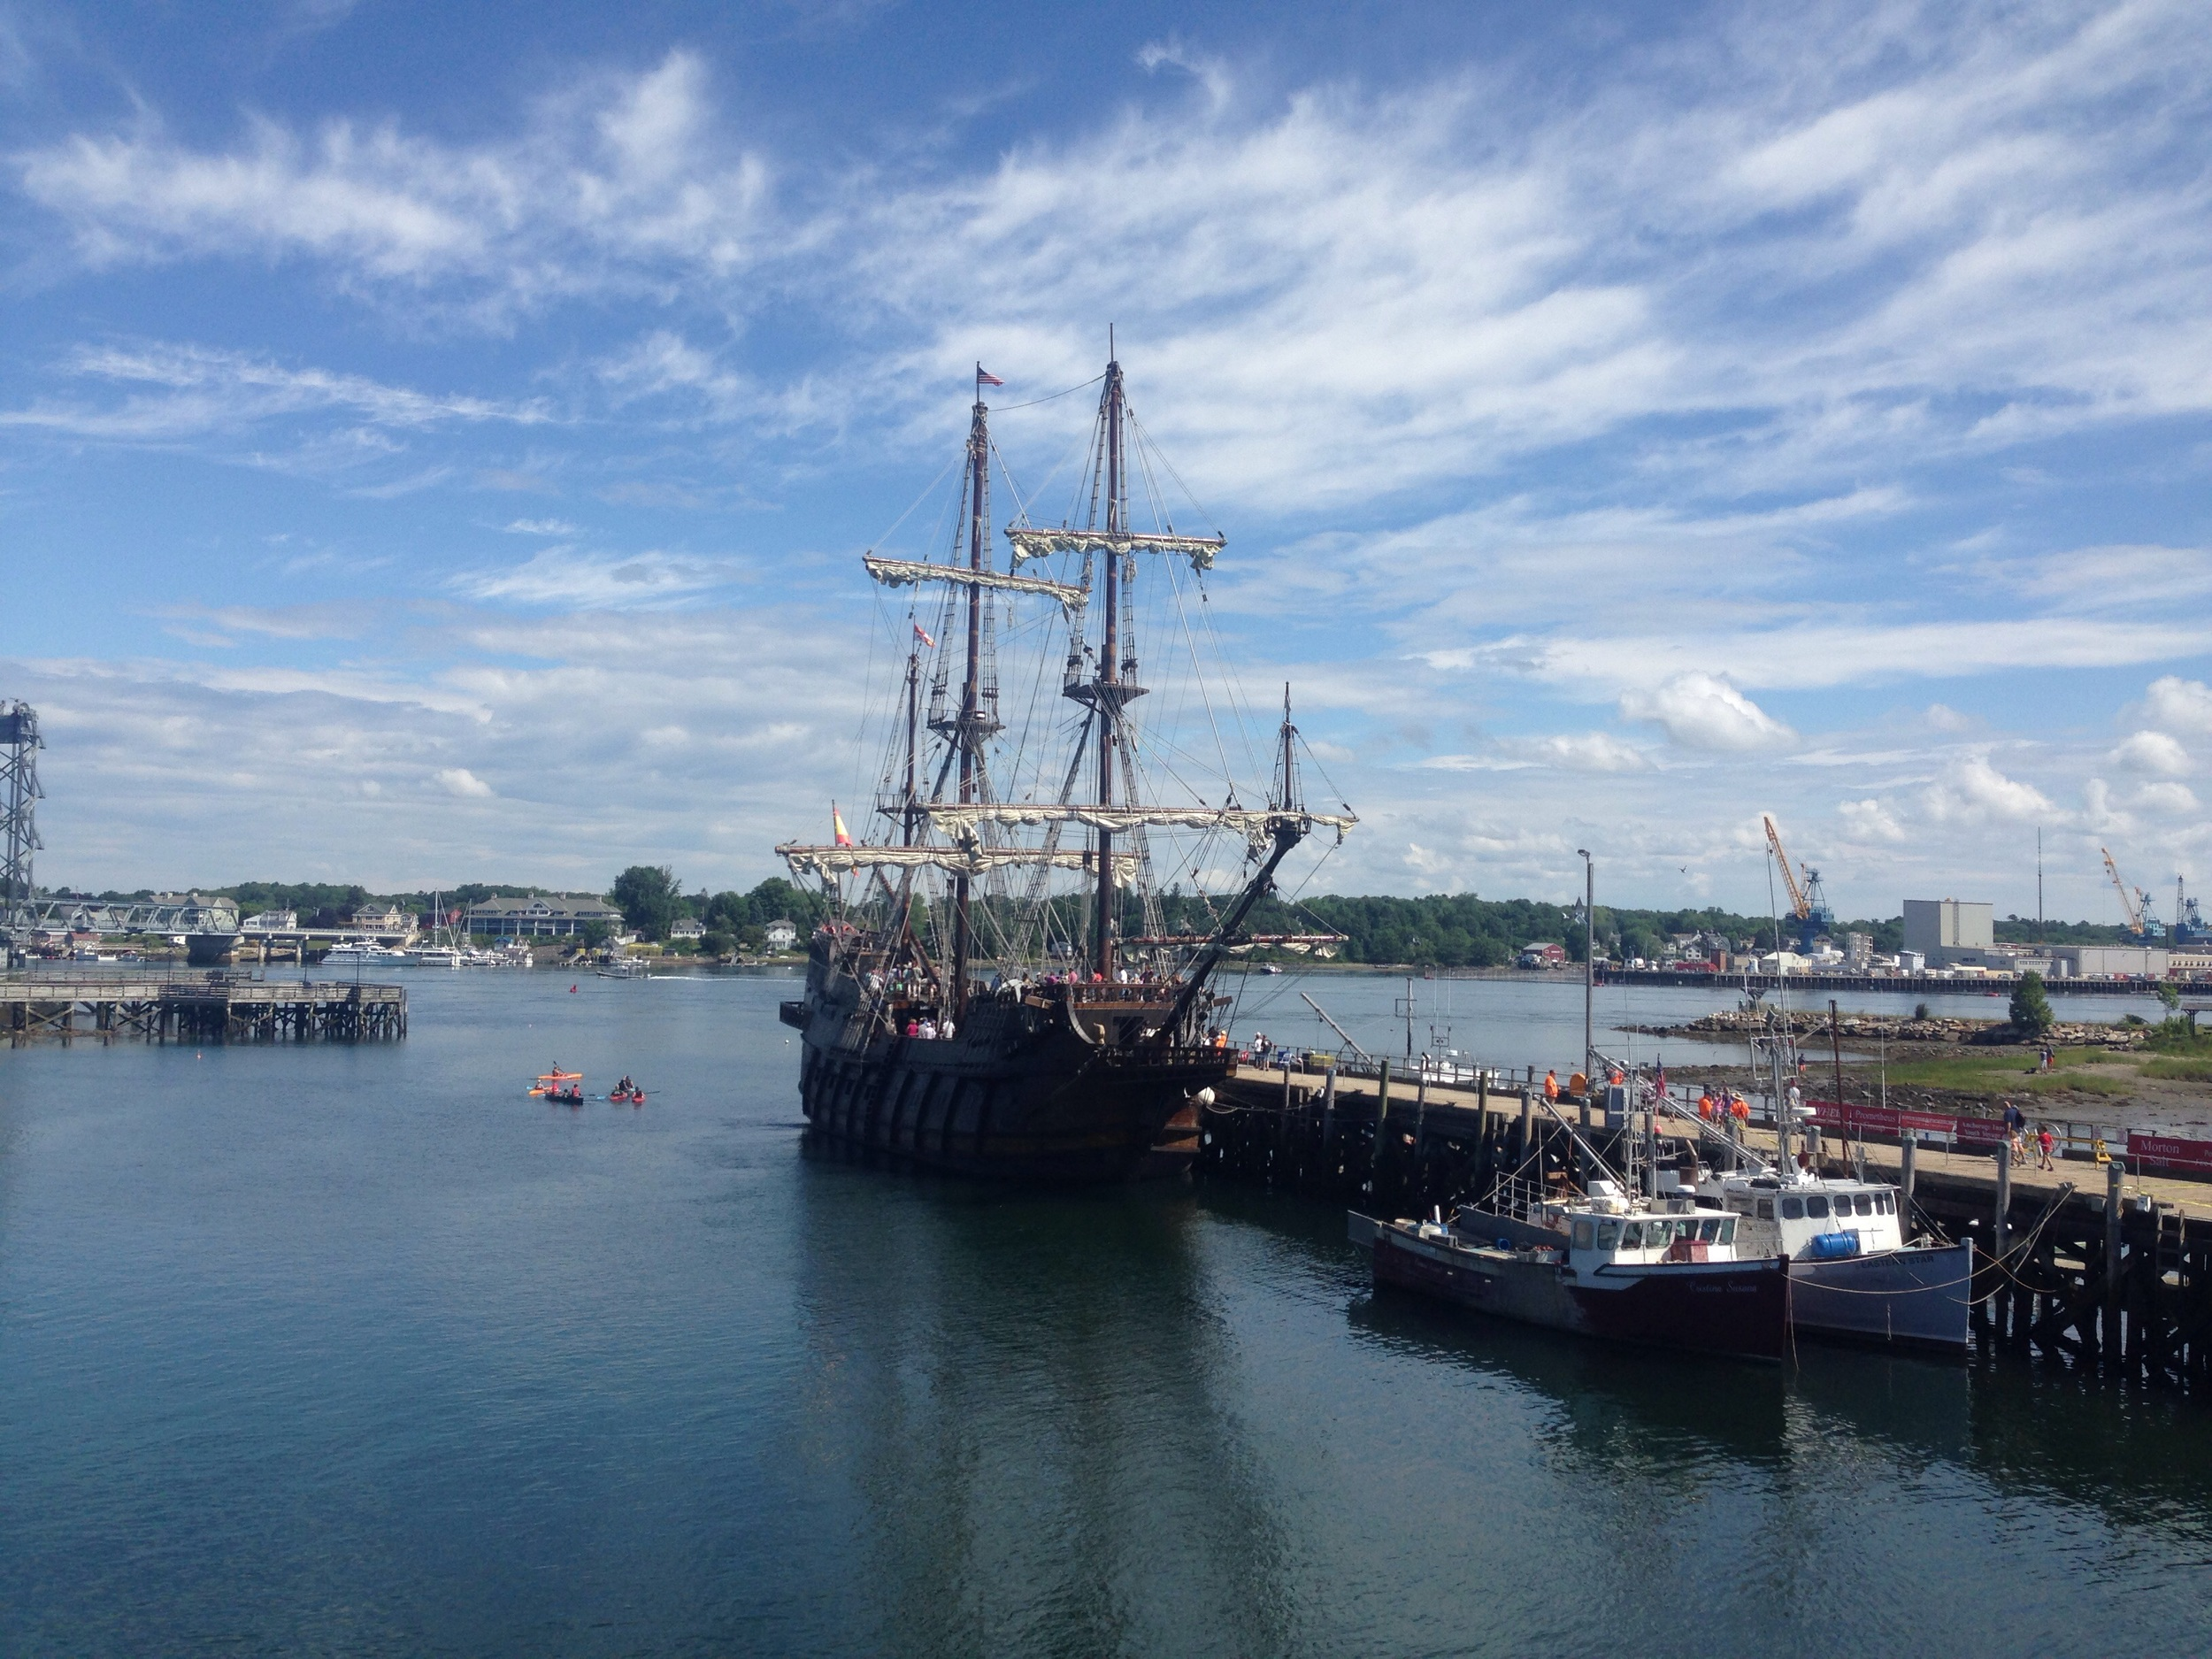 Seeing the Tall Ships in Portsmouth, NH